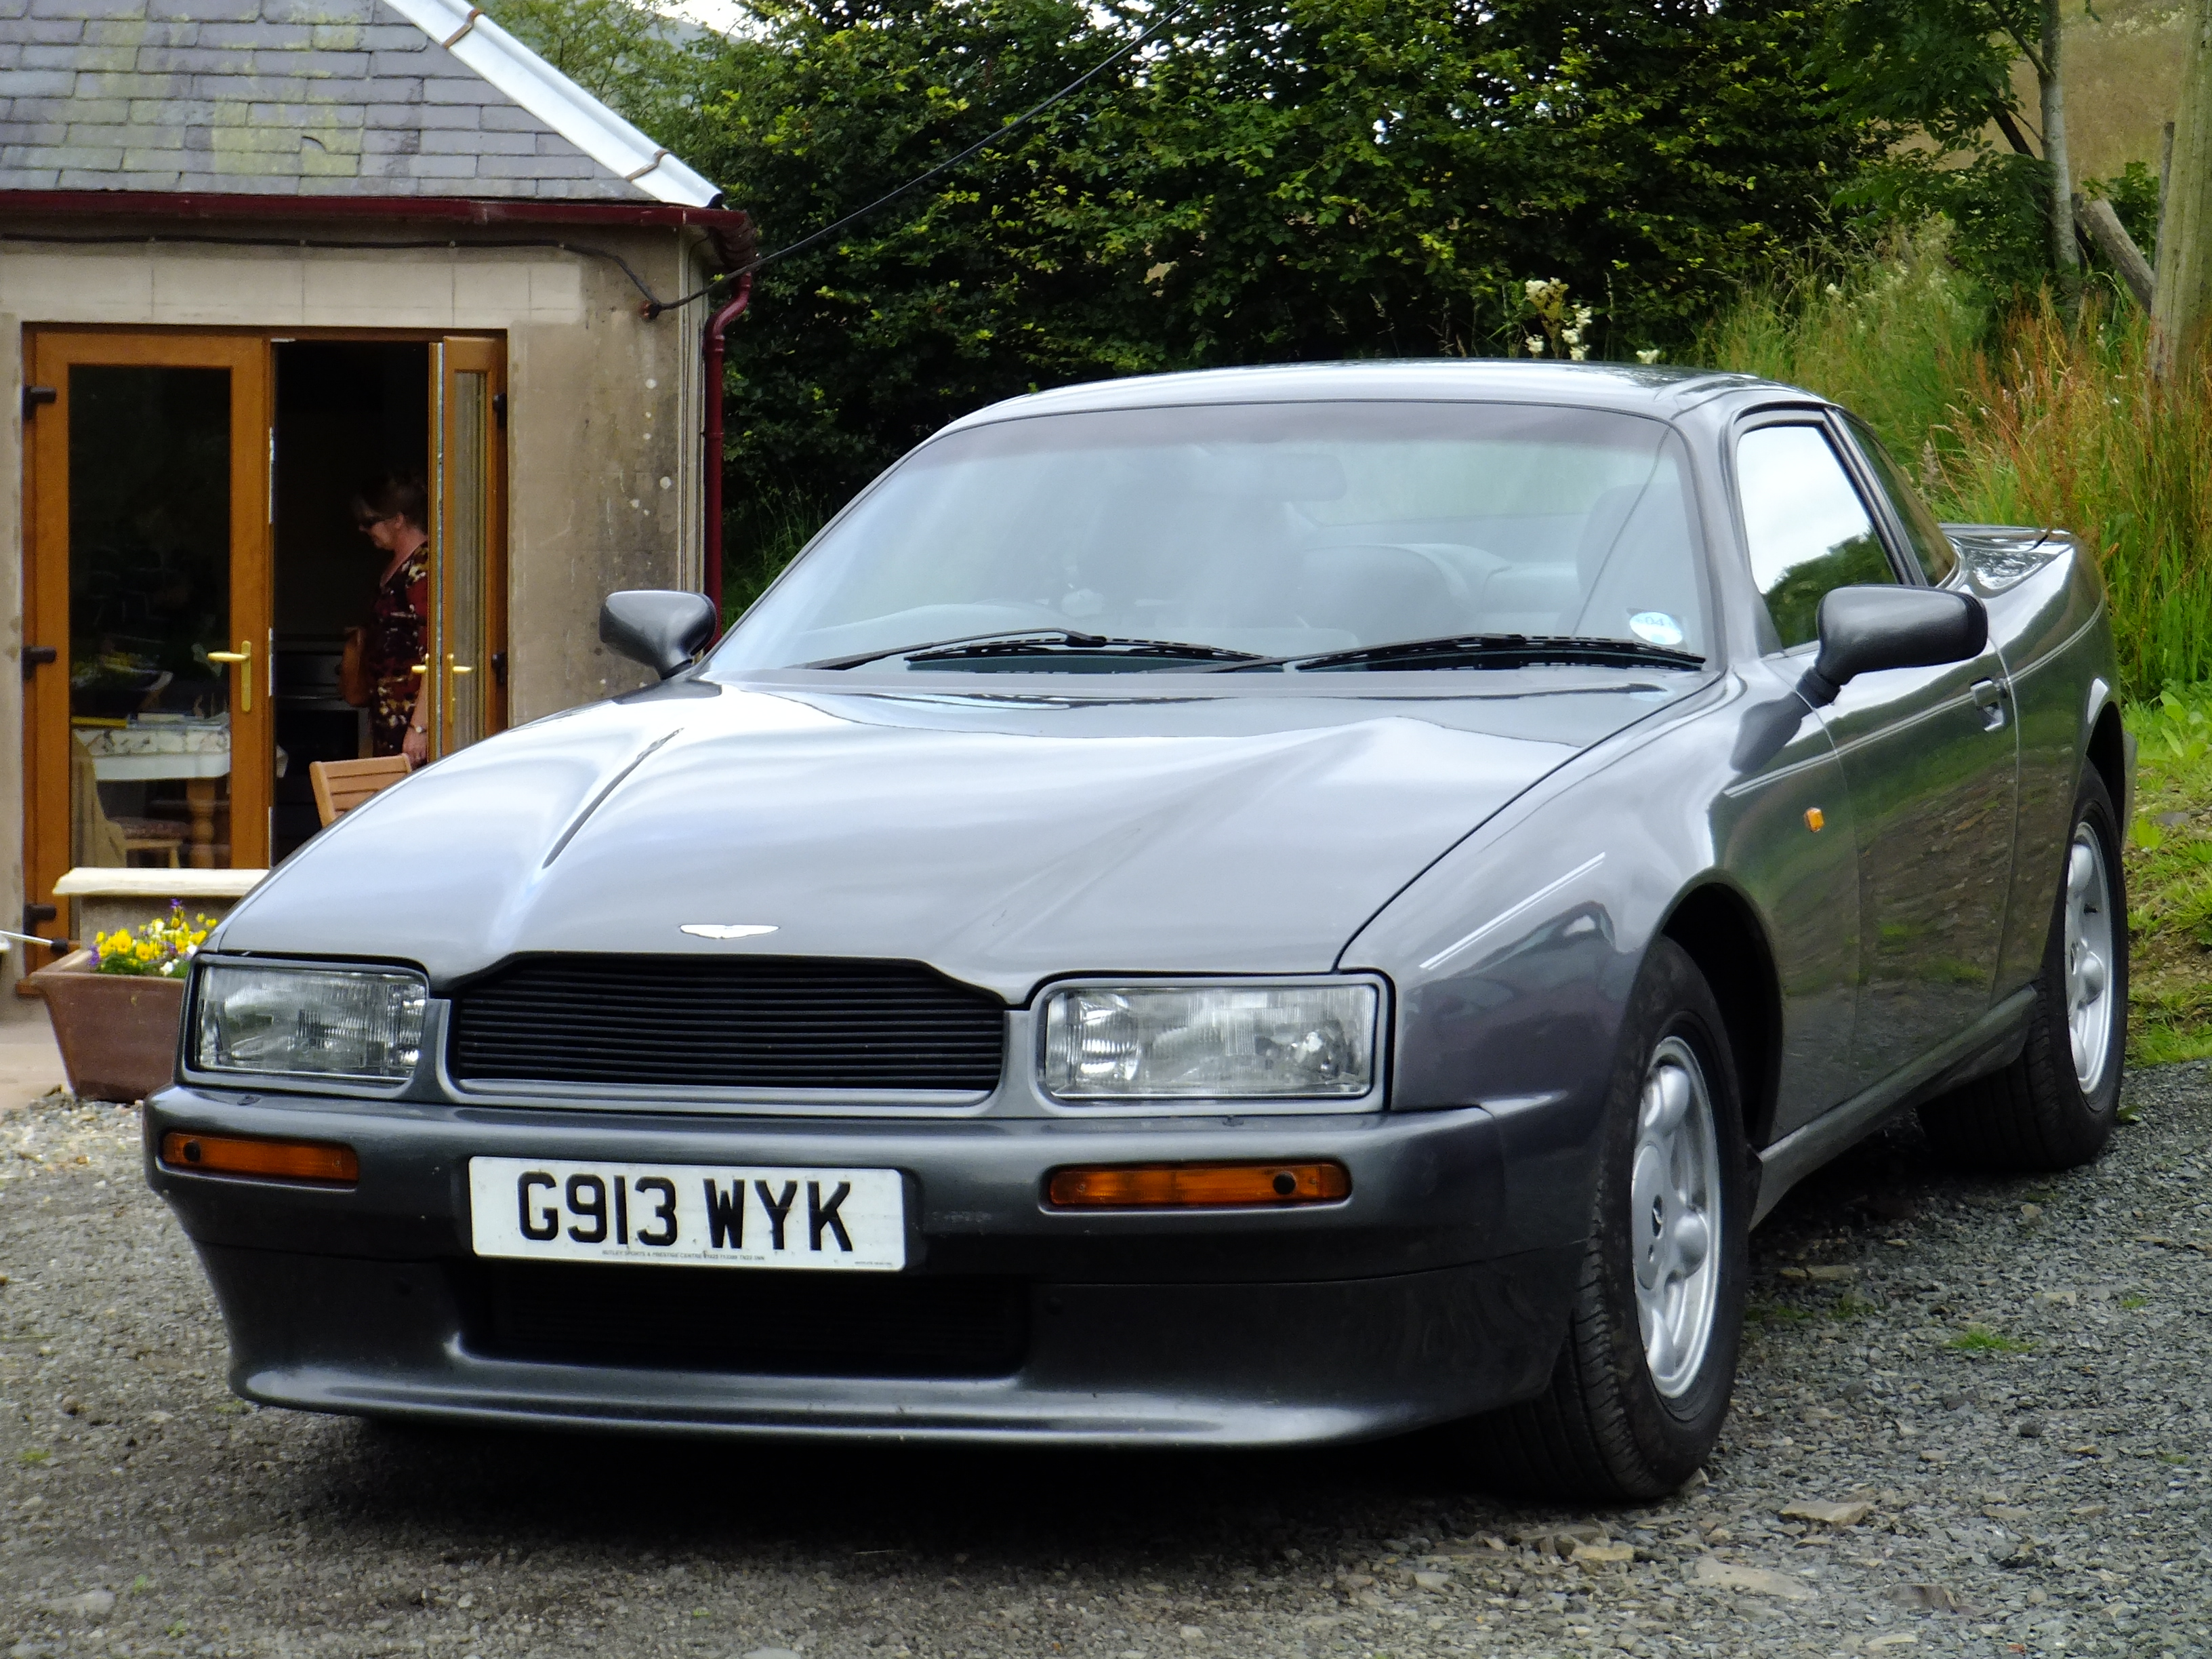 virage corner david mcaughtry photo travel and comment this section is about the aston martin virage the last of the true hand built astons i ve owned one for the last 10 years or so and have learned a lot of